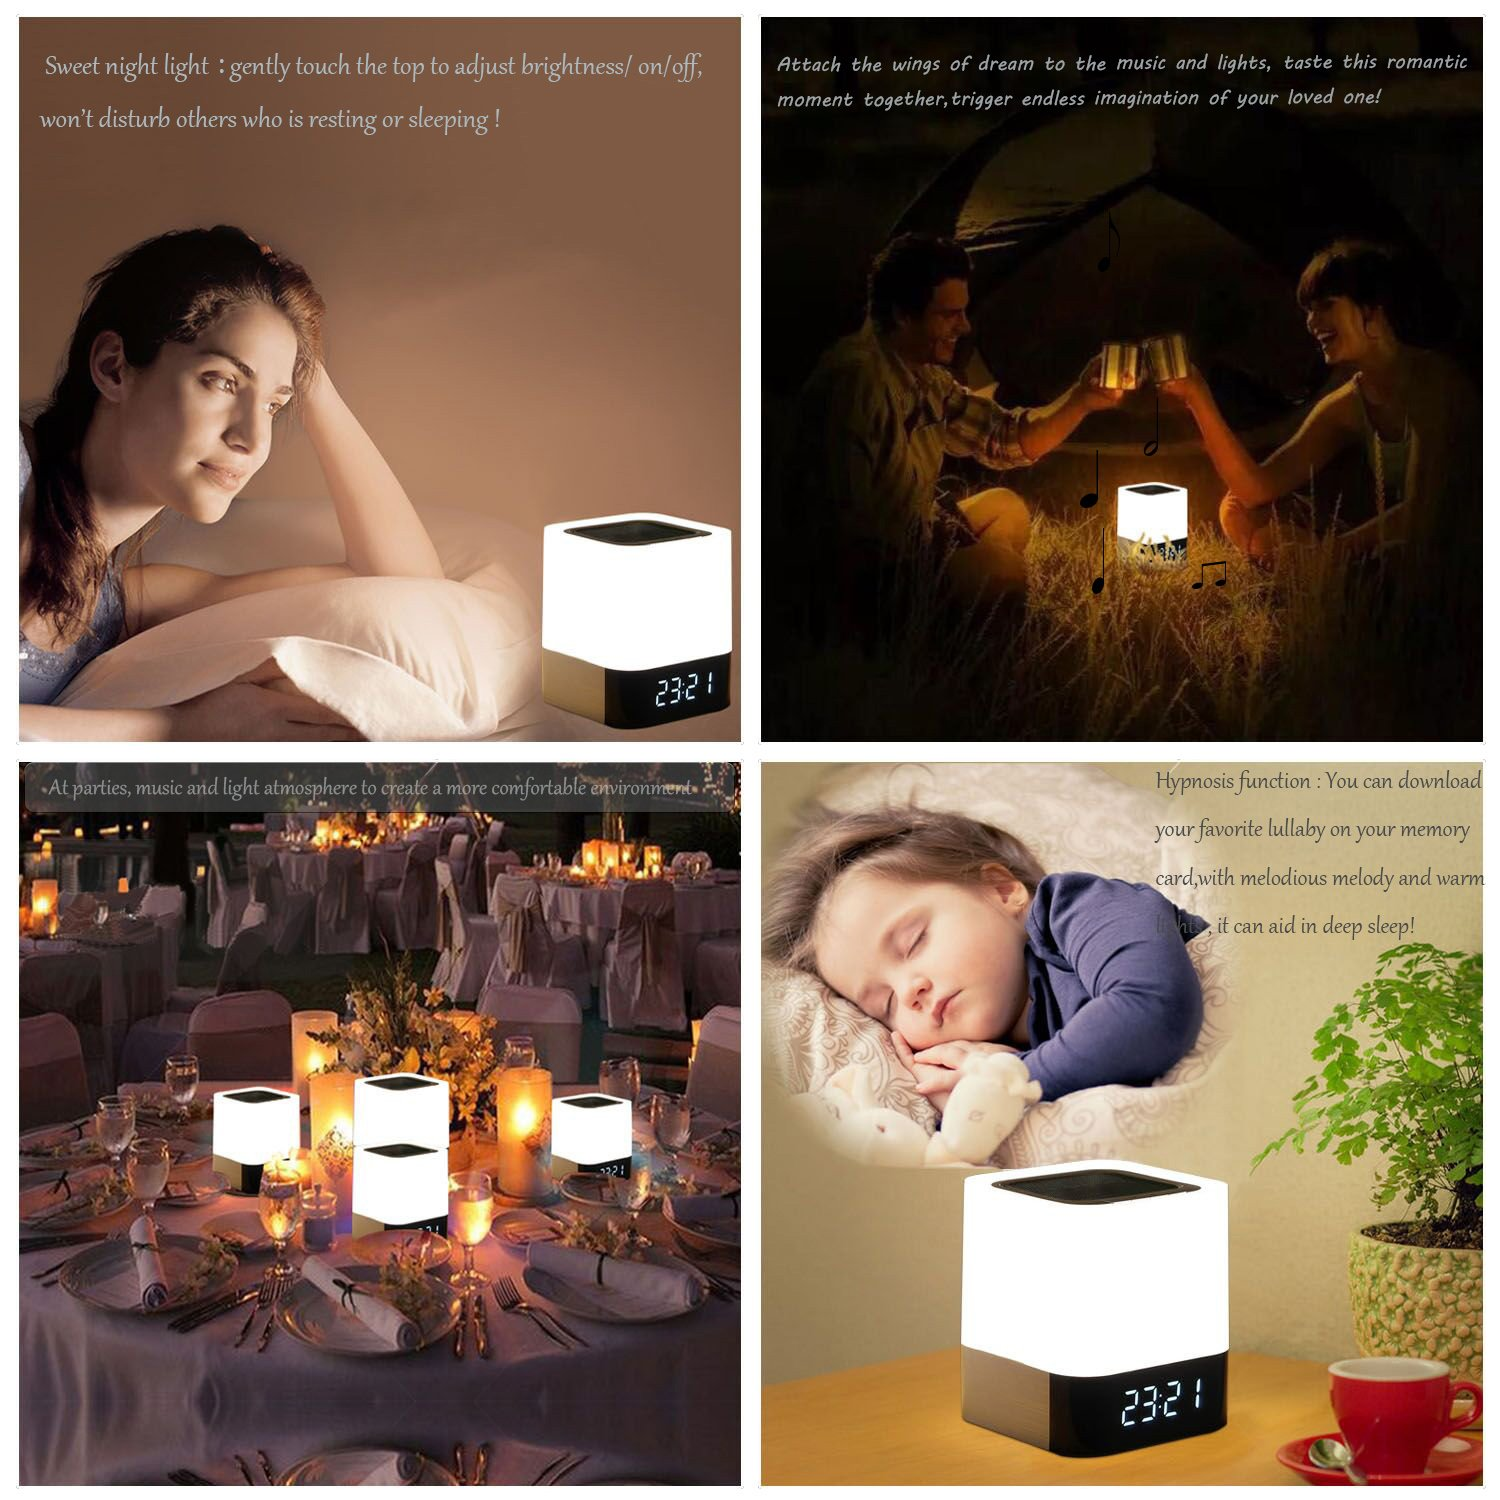 WamGra Night lights Bluetooth Speaker,Touch Sensor Bedside Lamp Dimmable Warm Light,Color Changing Bedside Lamp,MP3 Music Player,Wireless Speaker with Lights (Newest Version) by WamGra (Image #7)